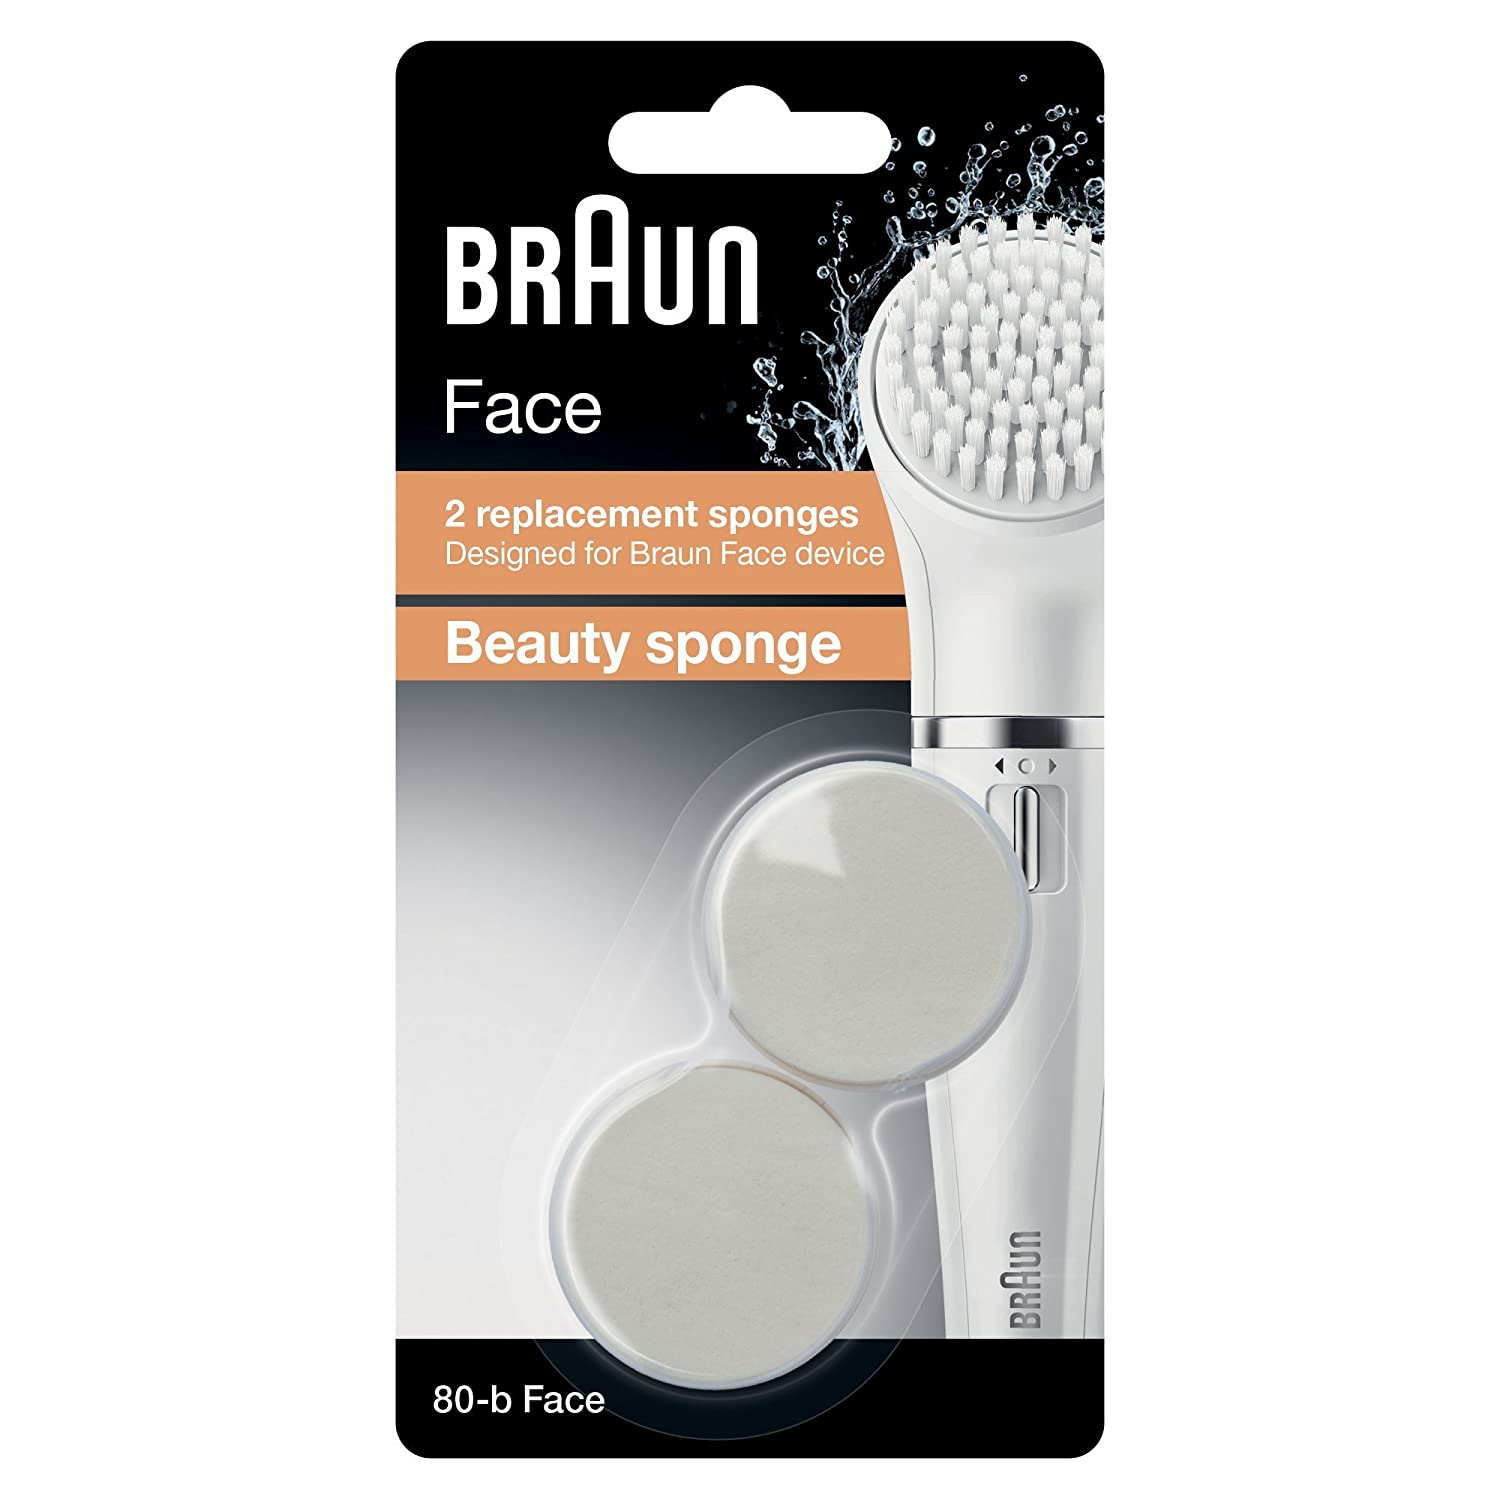 Braun Face 810 Facial Epilator, Hair Removal and Facial Cleansing, with Additional Brush and Battery, White Procter & Gamble